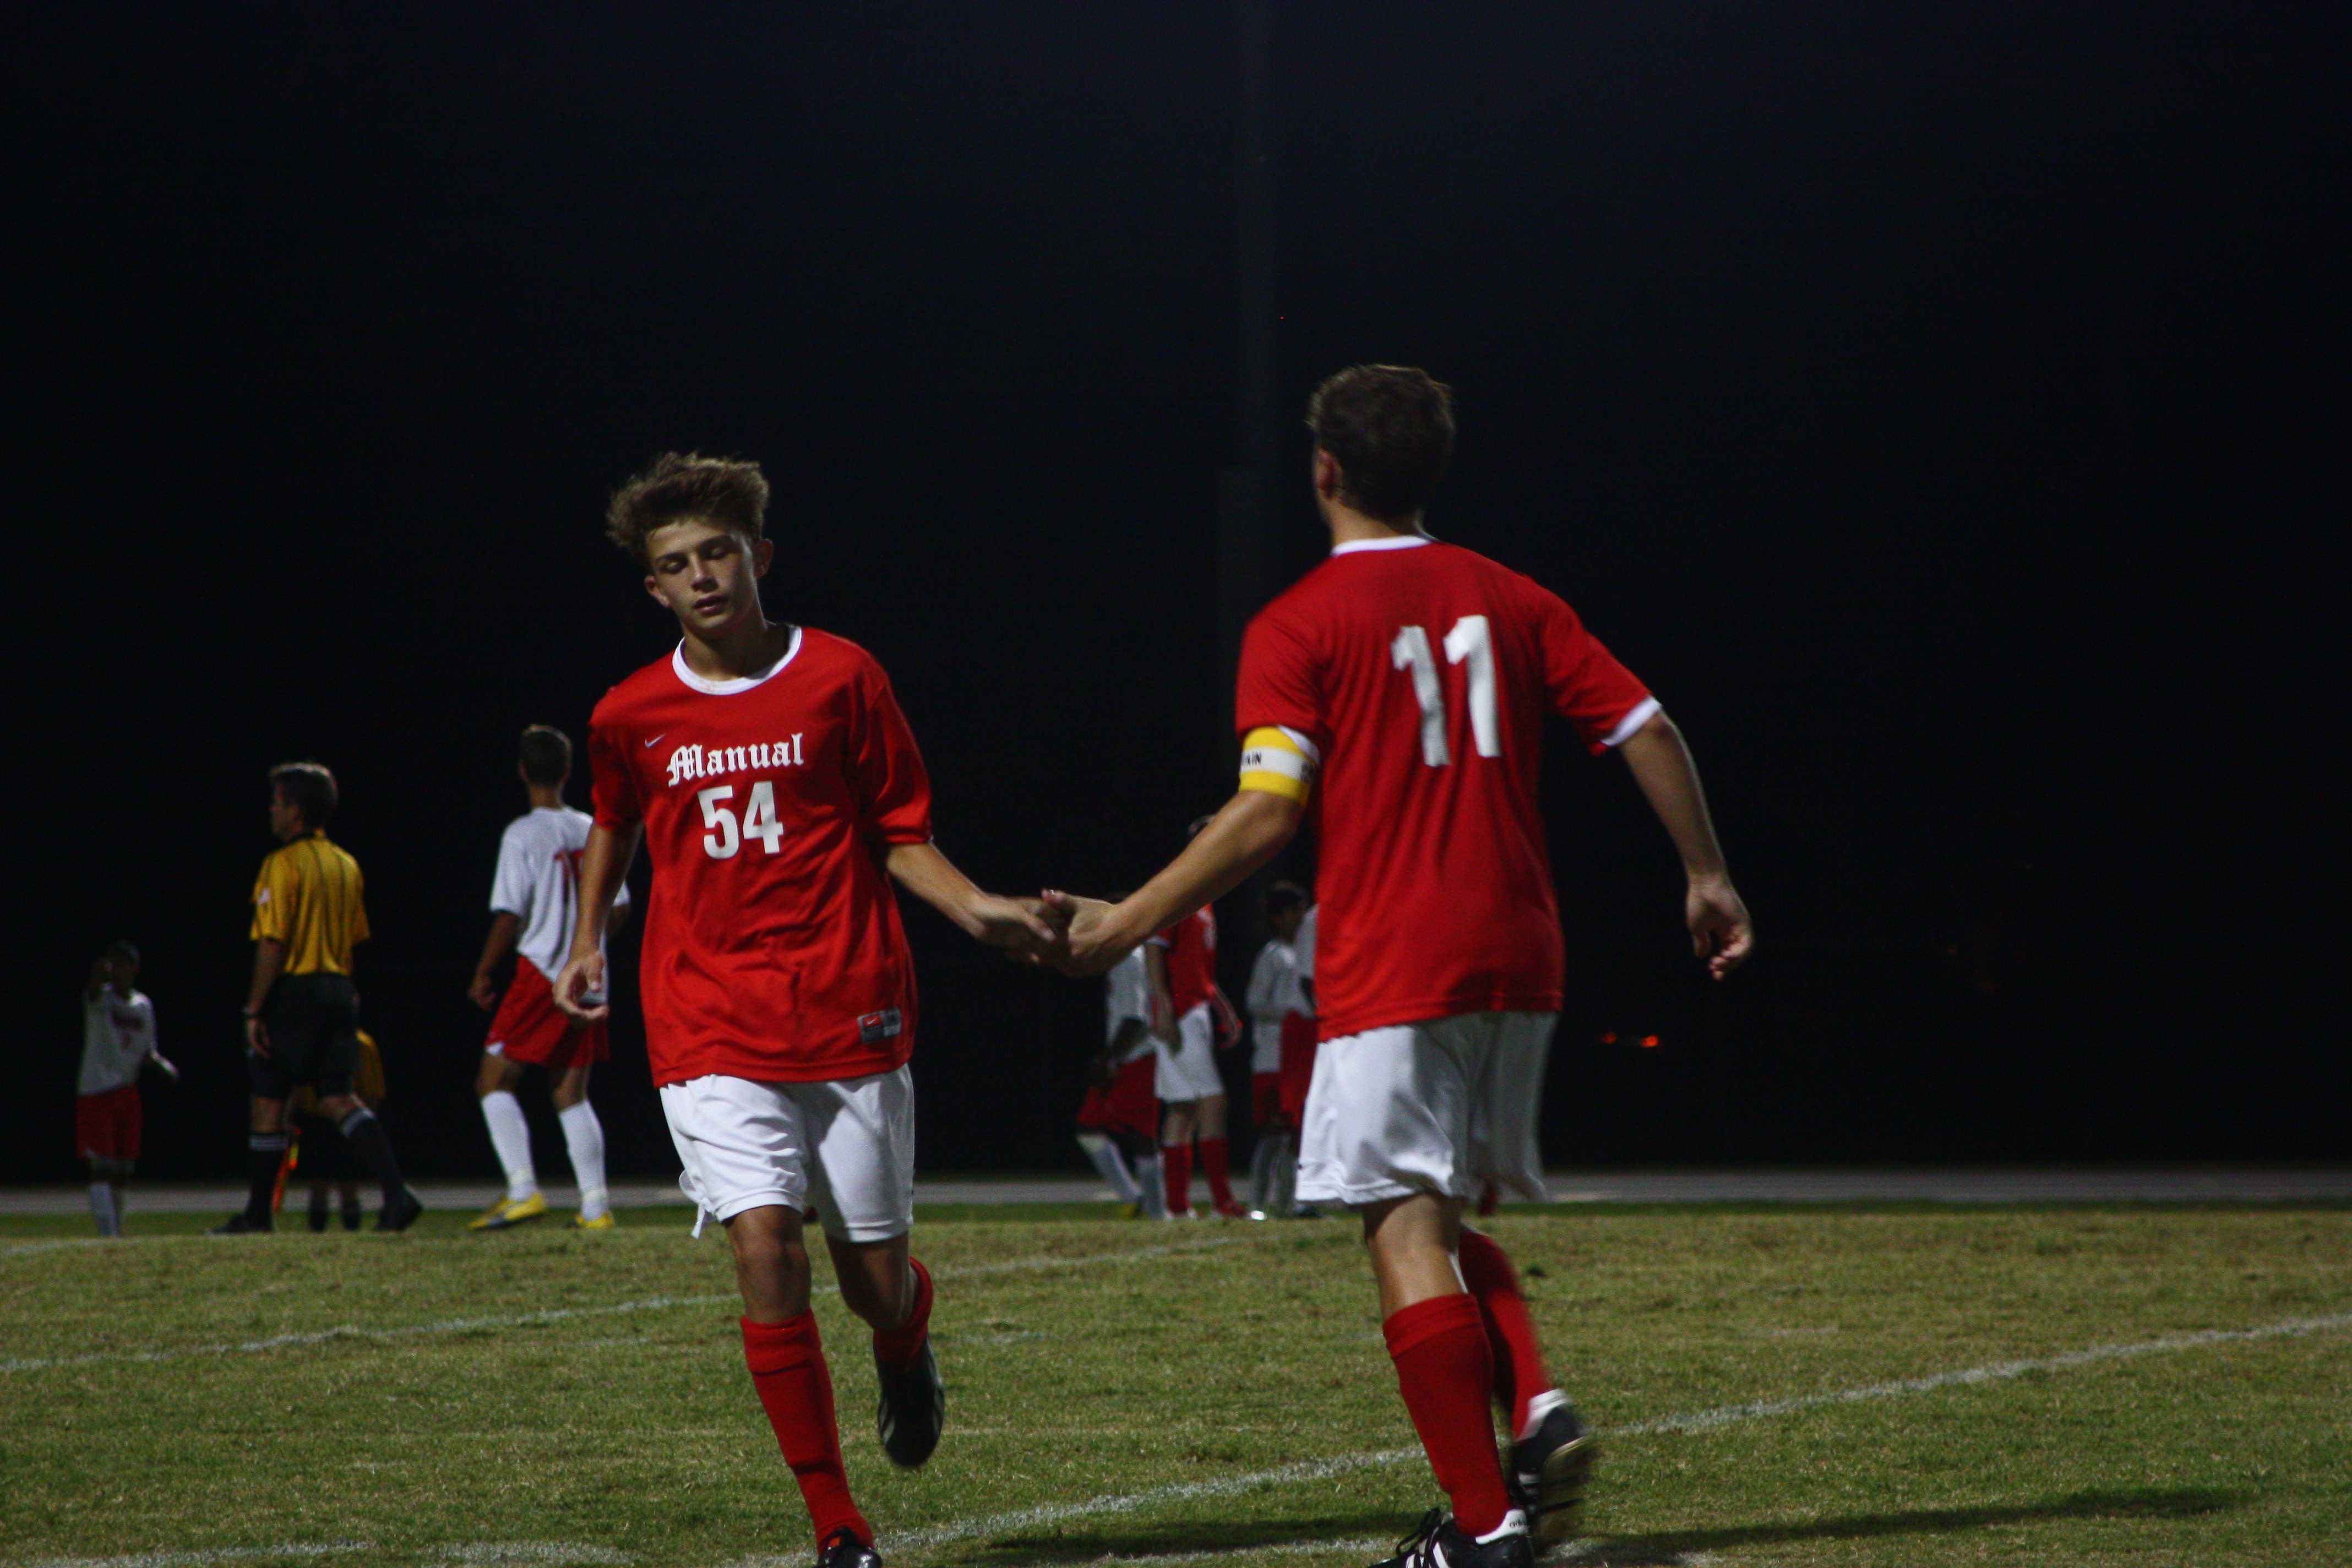 Sam Ross (12, #11) shows good sportsmanship towards his teammate Jason Kidwell (9,#54) when substituting.